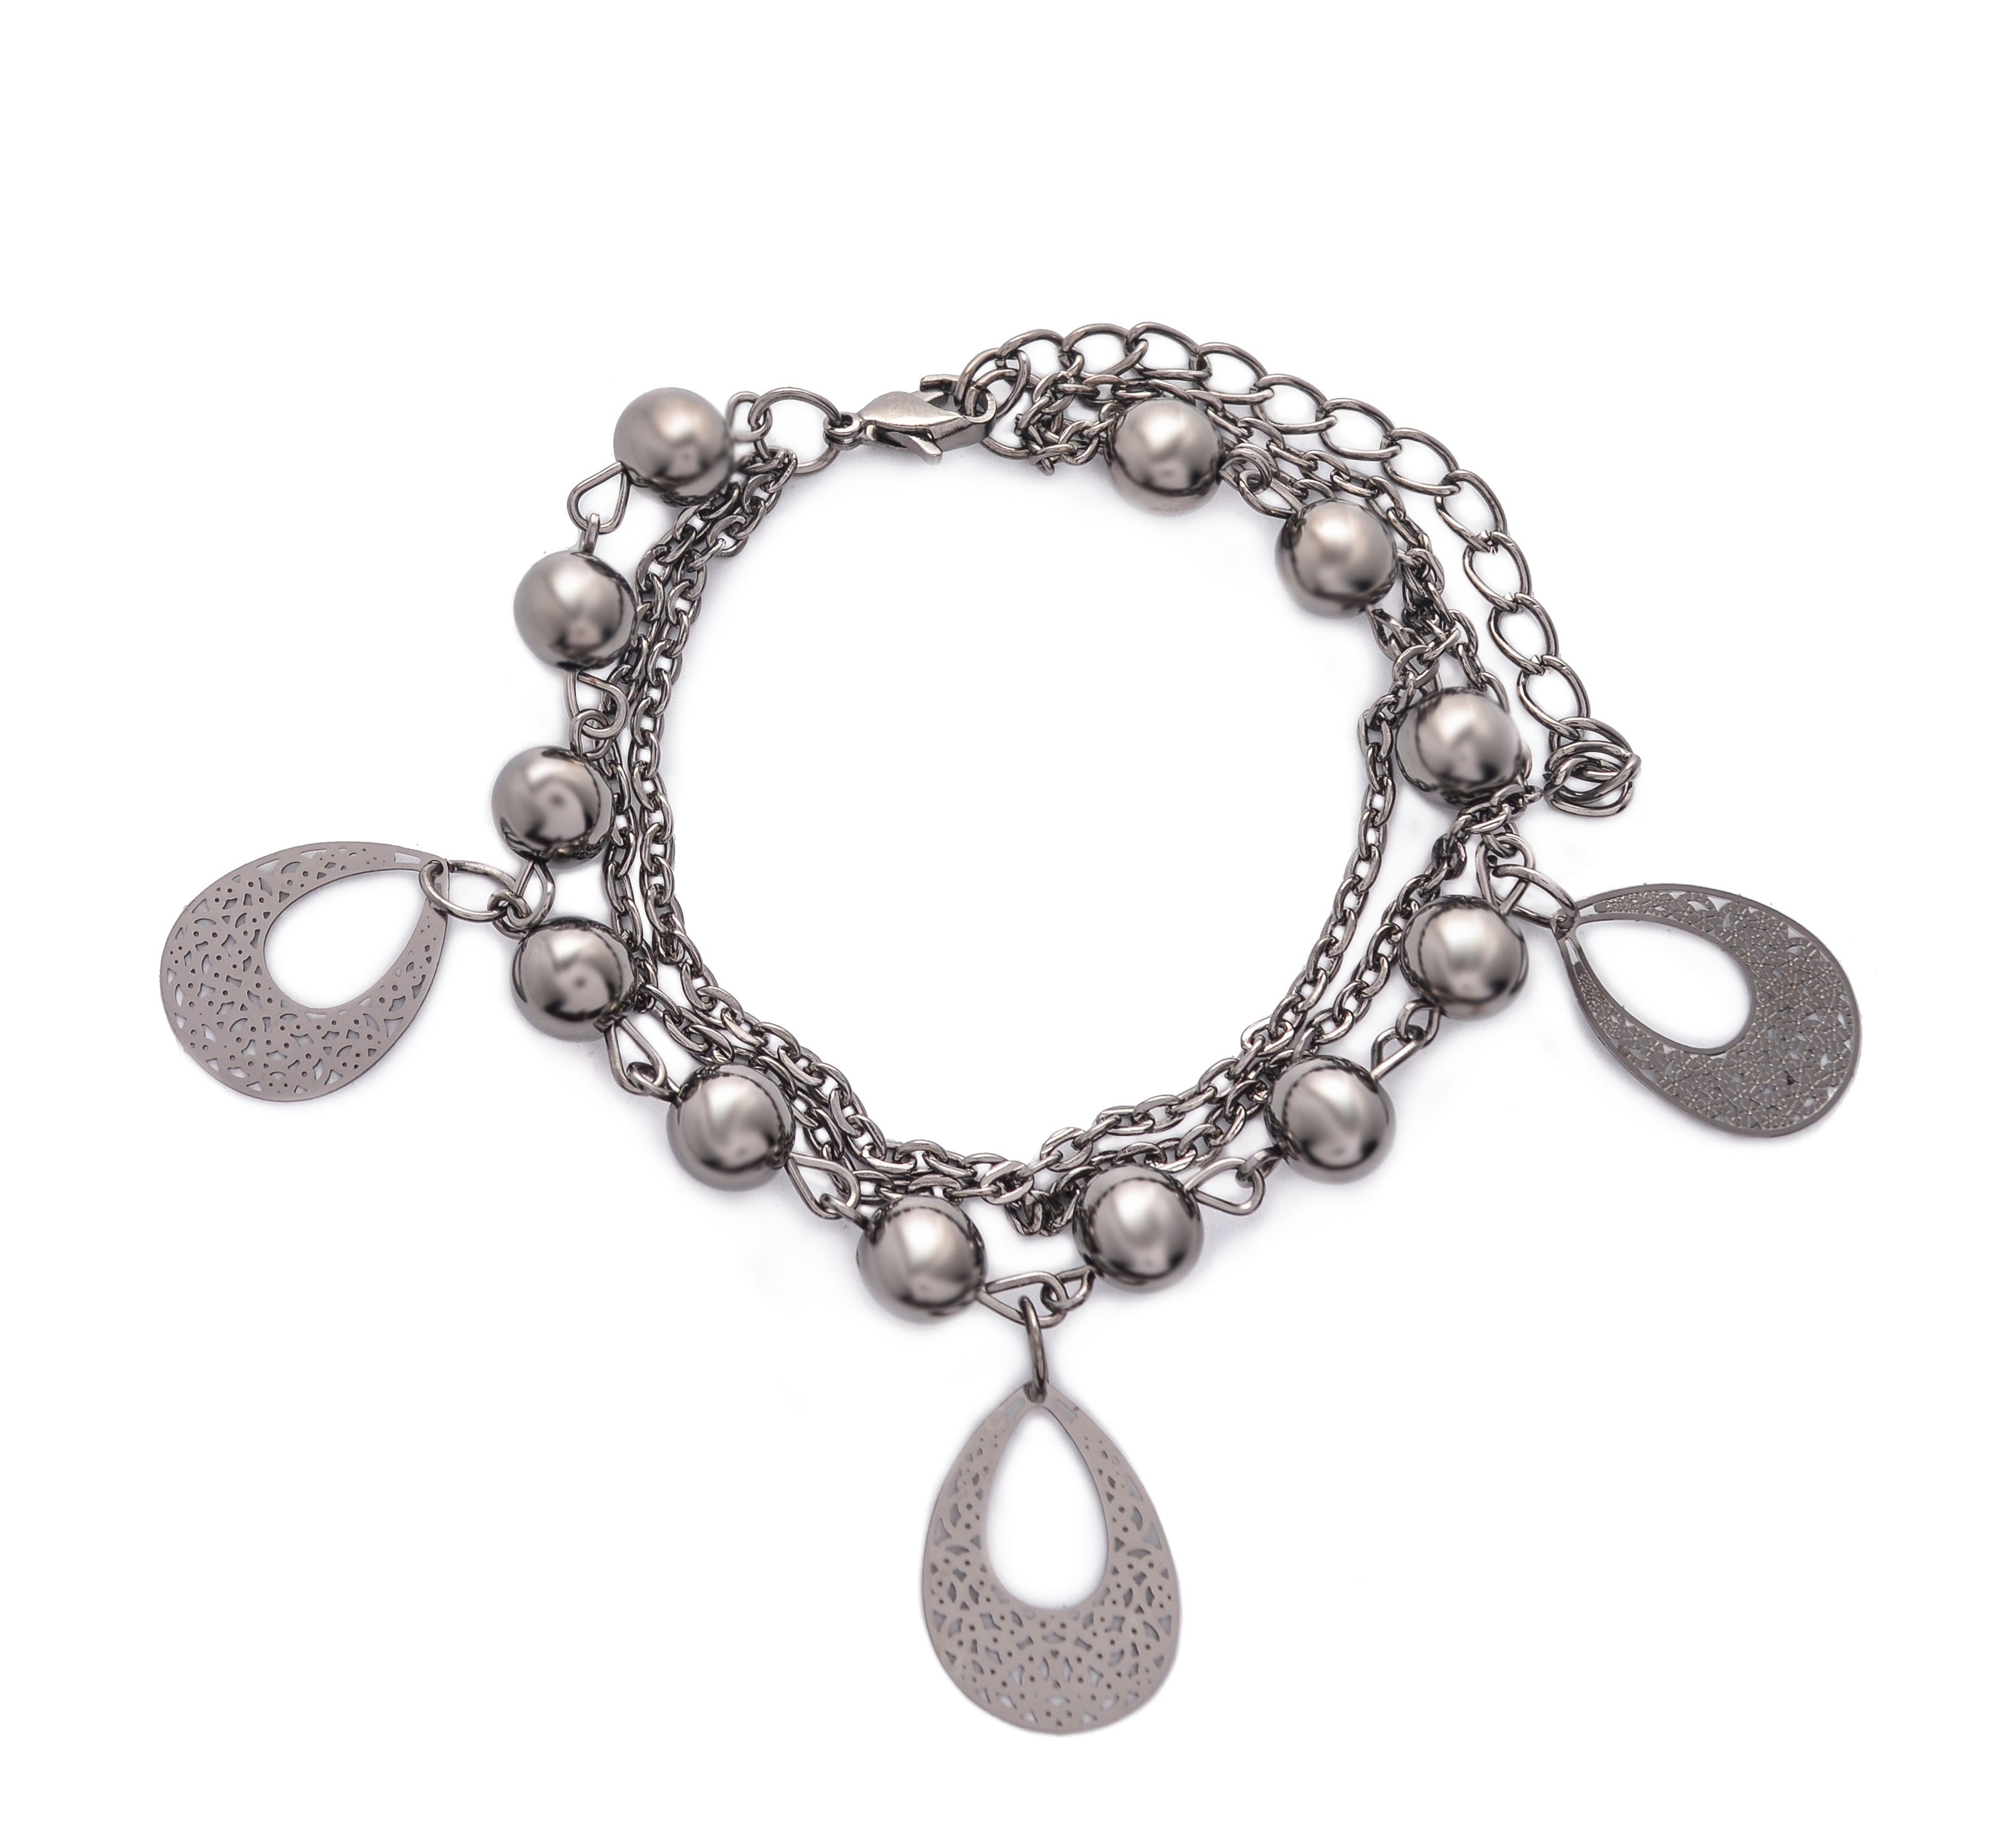 Silver two in one link chain bracelet with crescent pendants